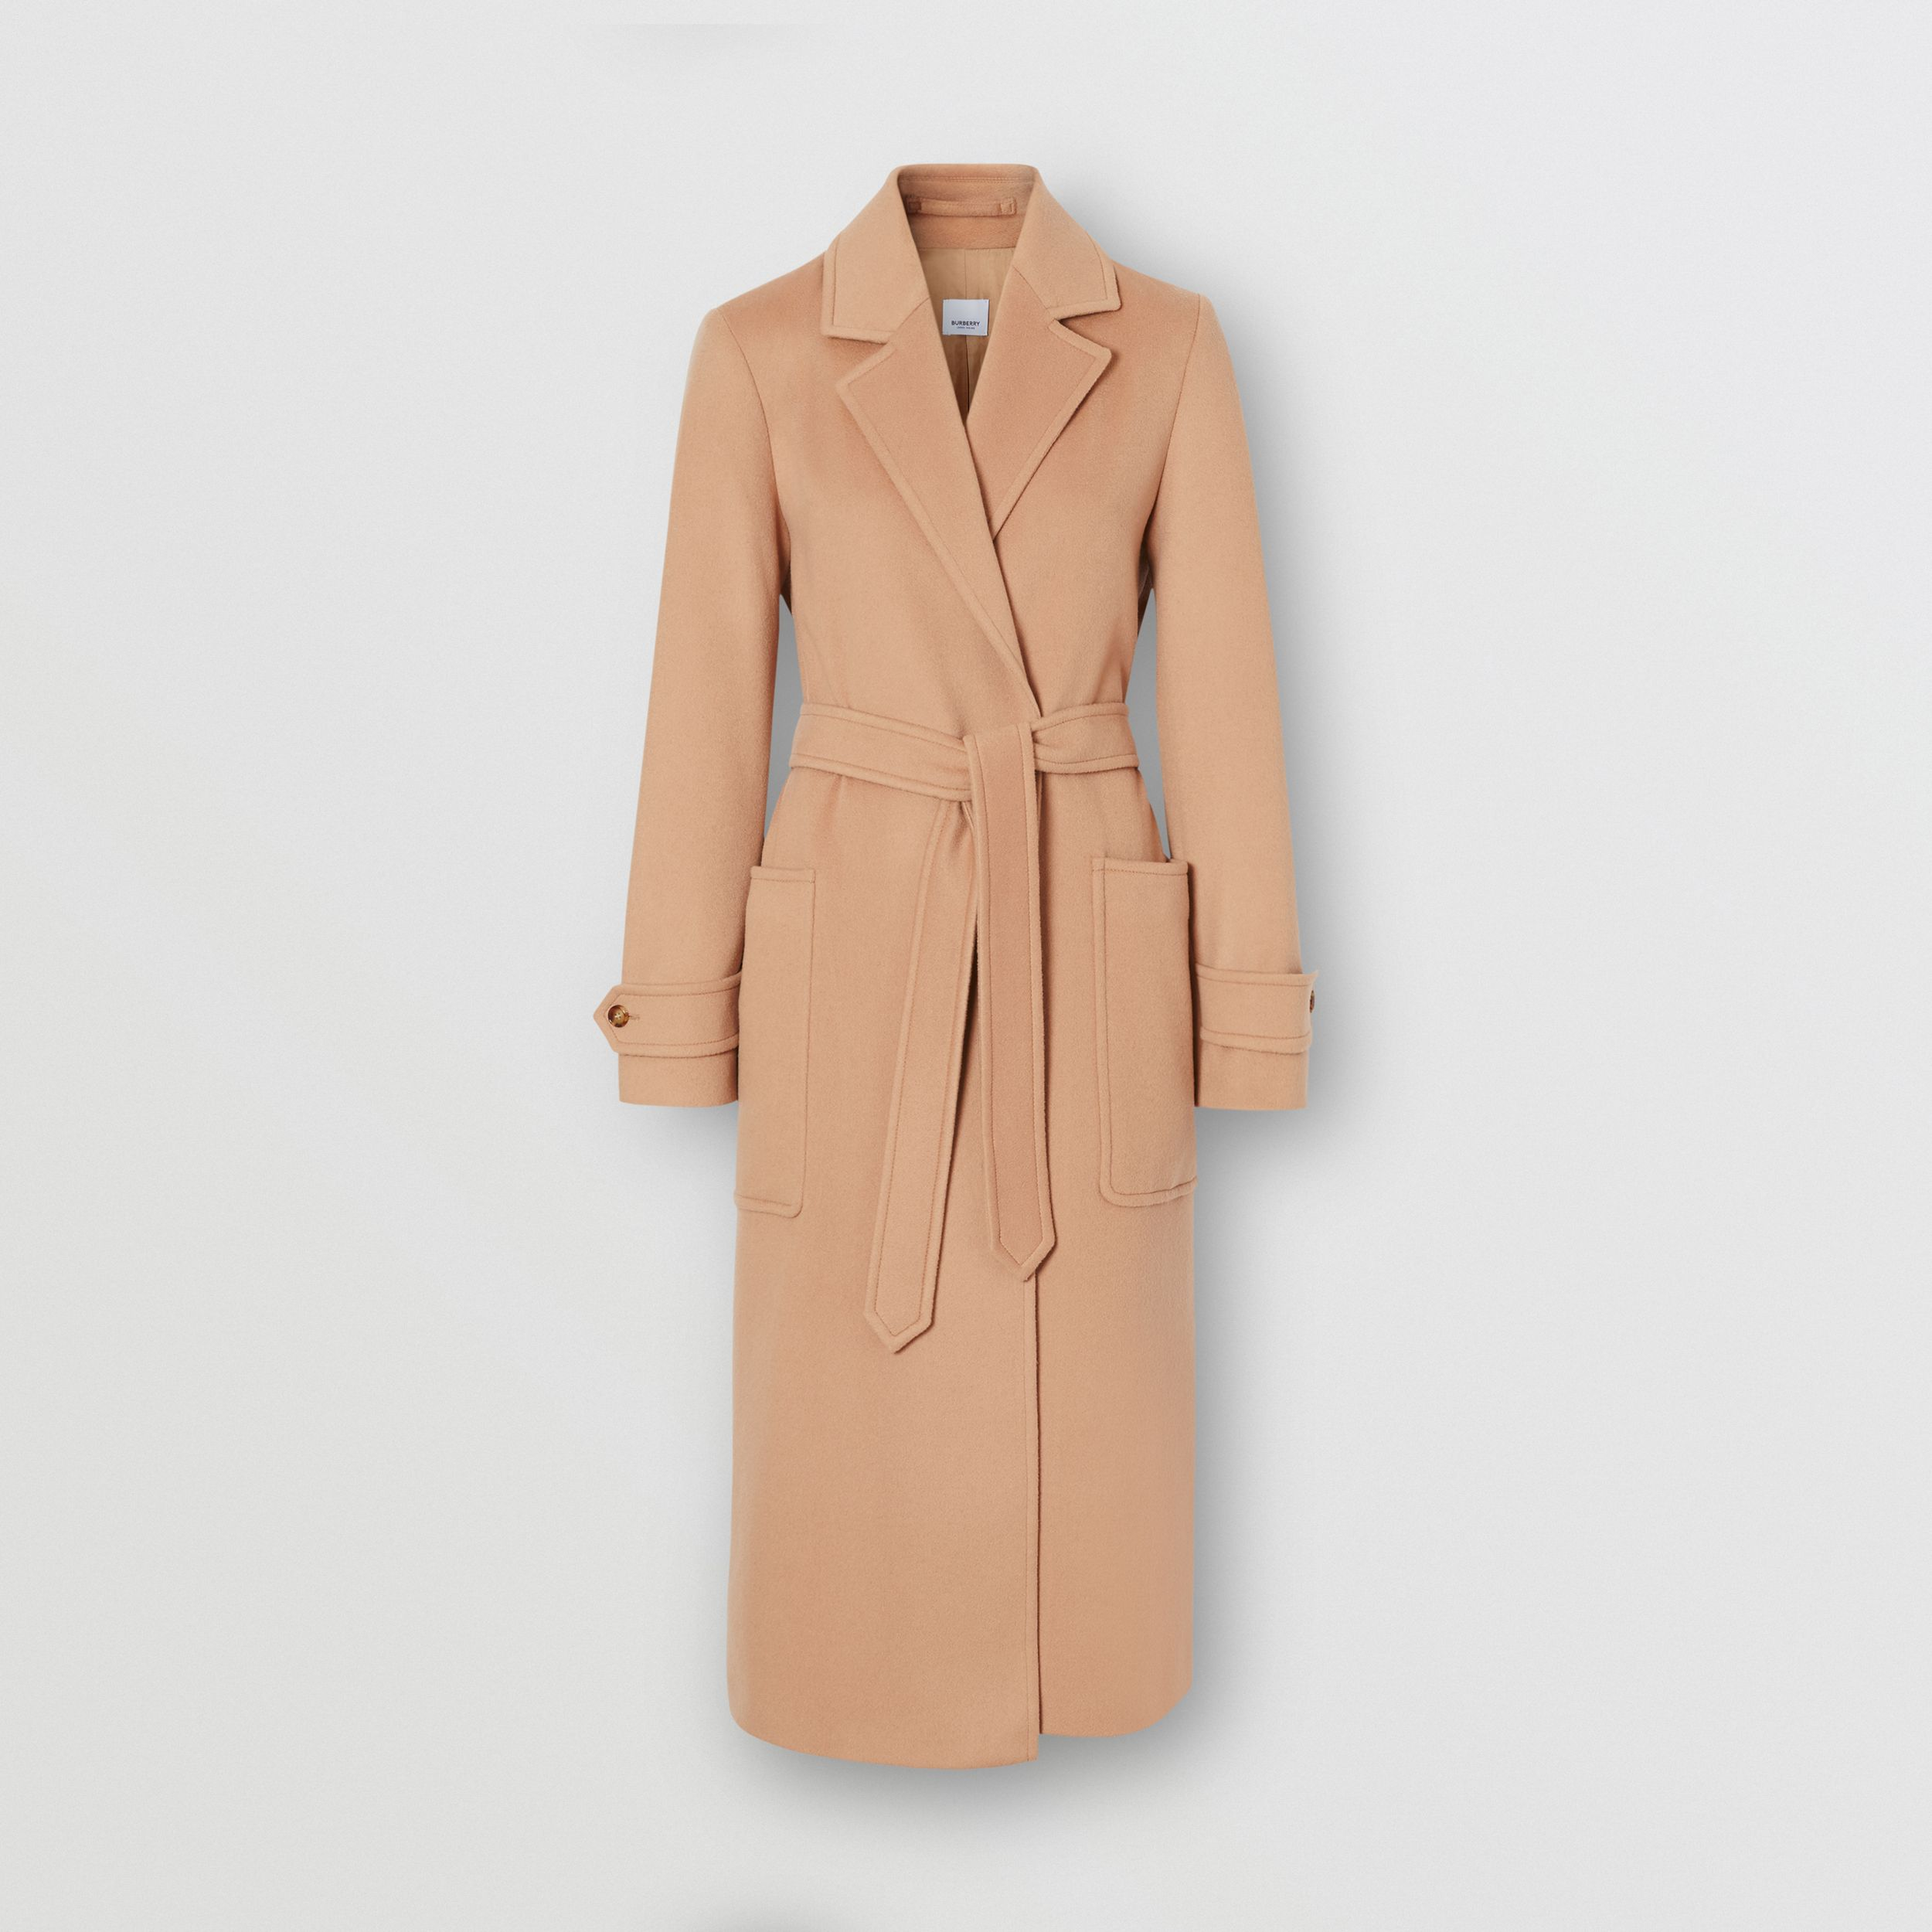 Cashmere Wrap Coat in Modern Beige - Women | Burberry - 4